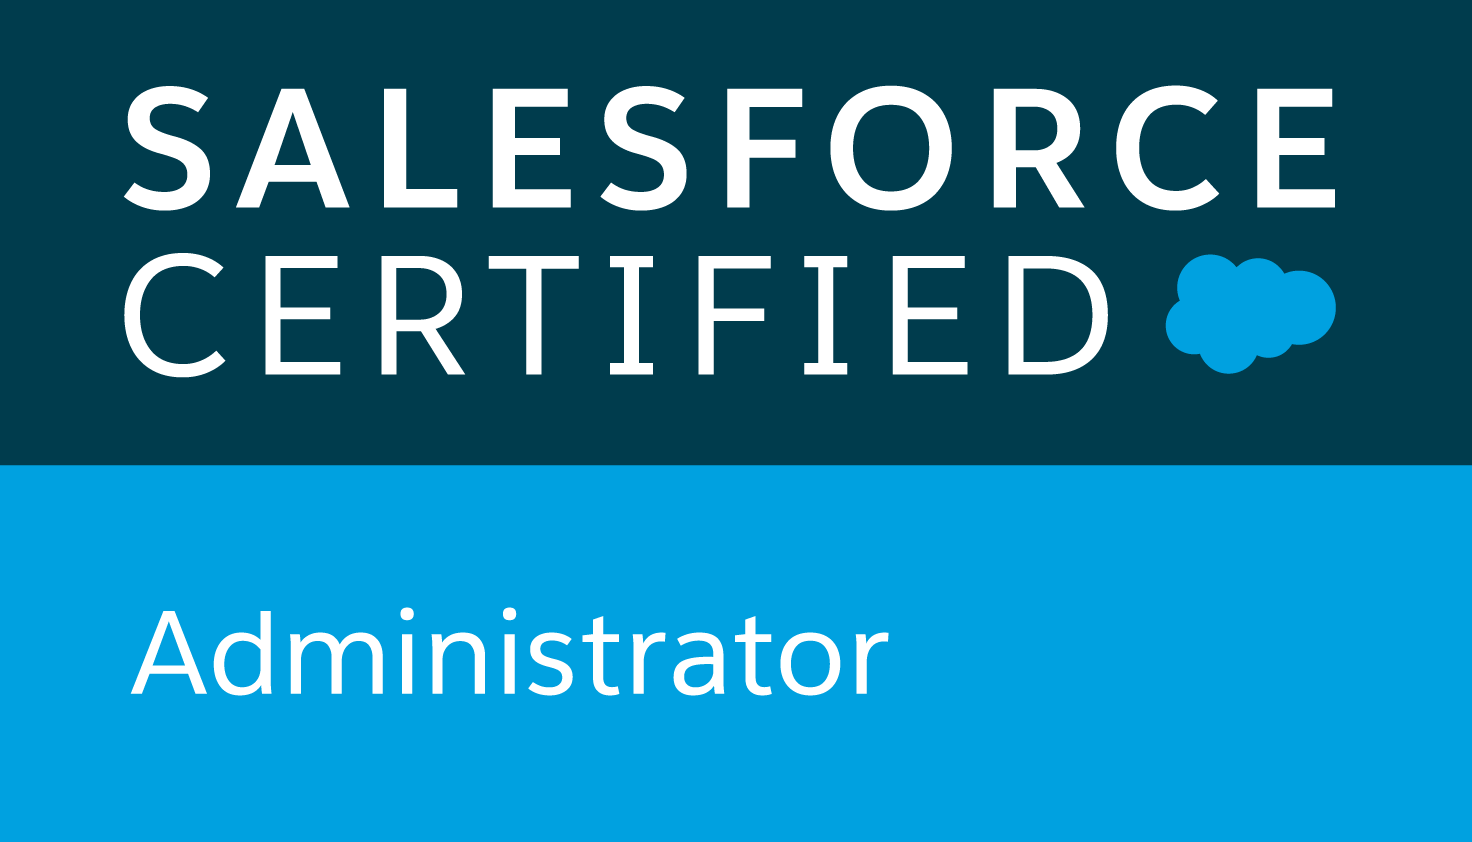 How I Became a Salesforce Certified Administrator